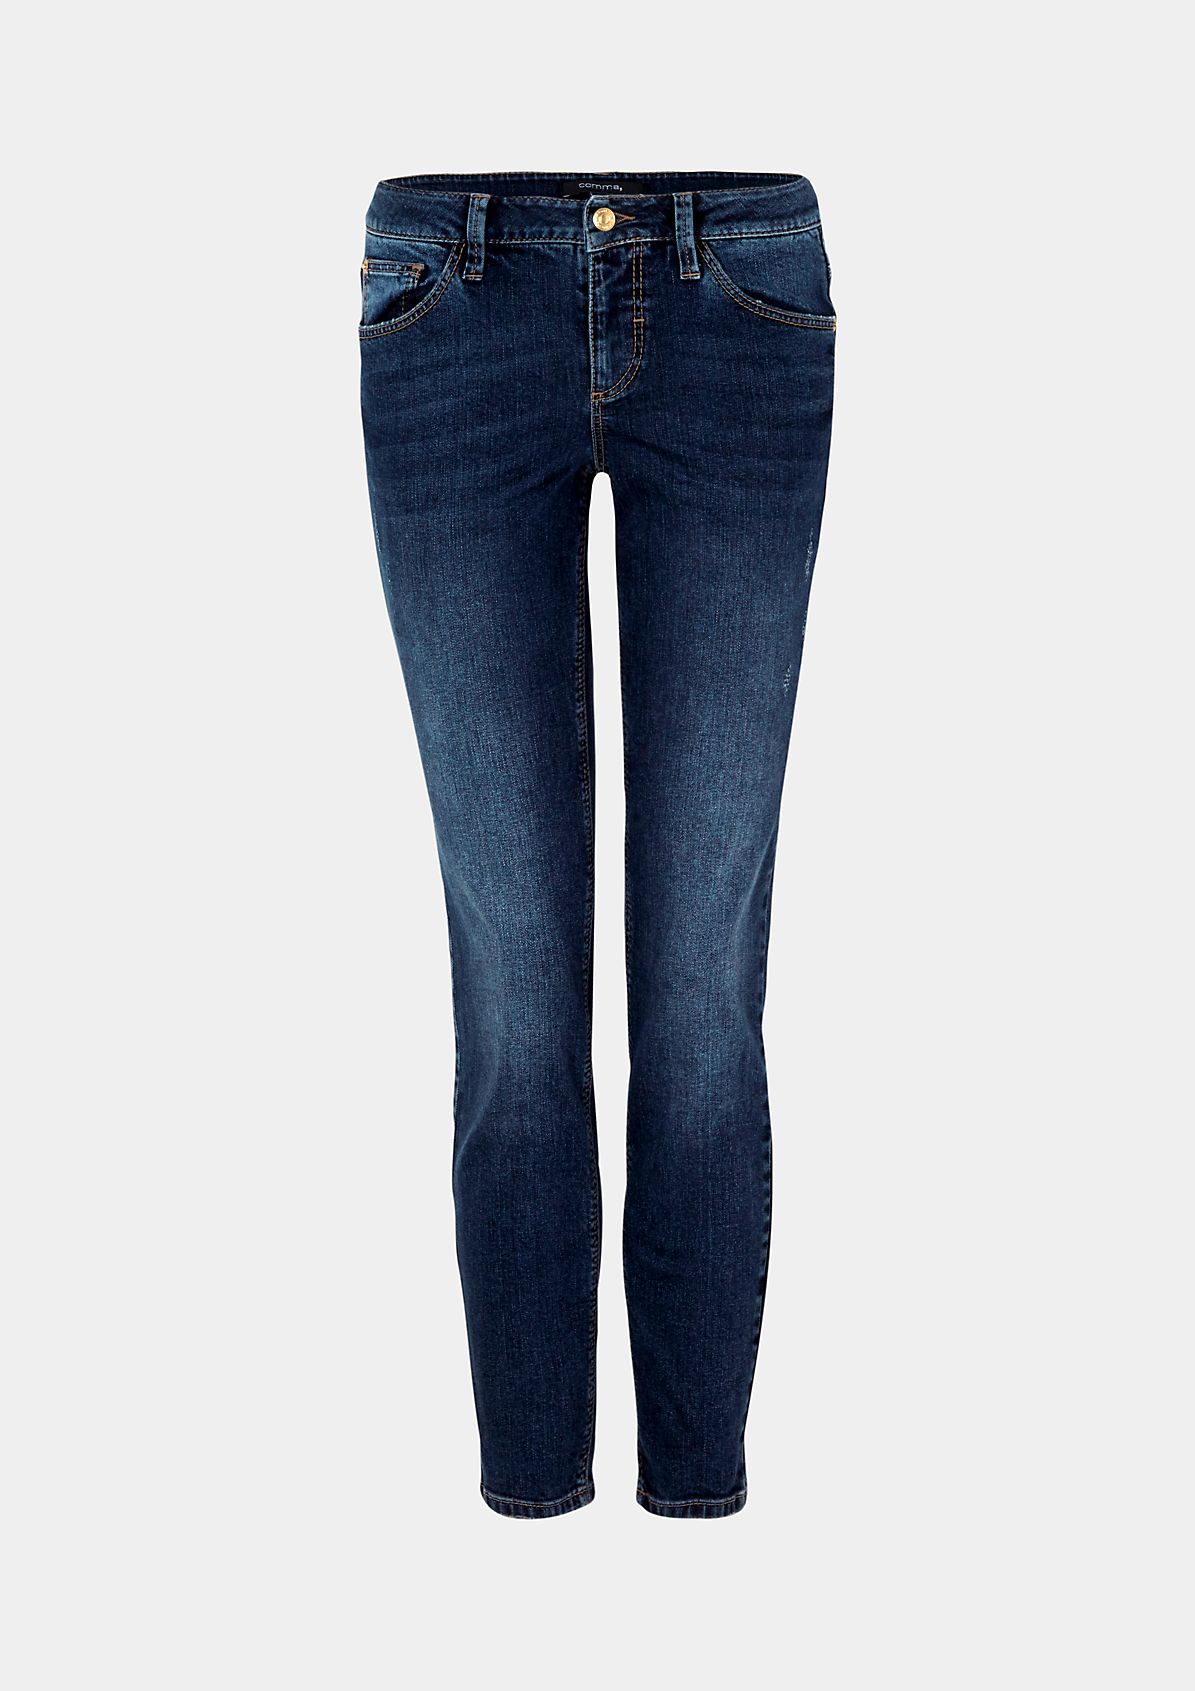 Klassische Jeans in rougher Used-Waschung